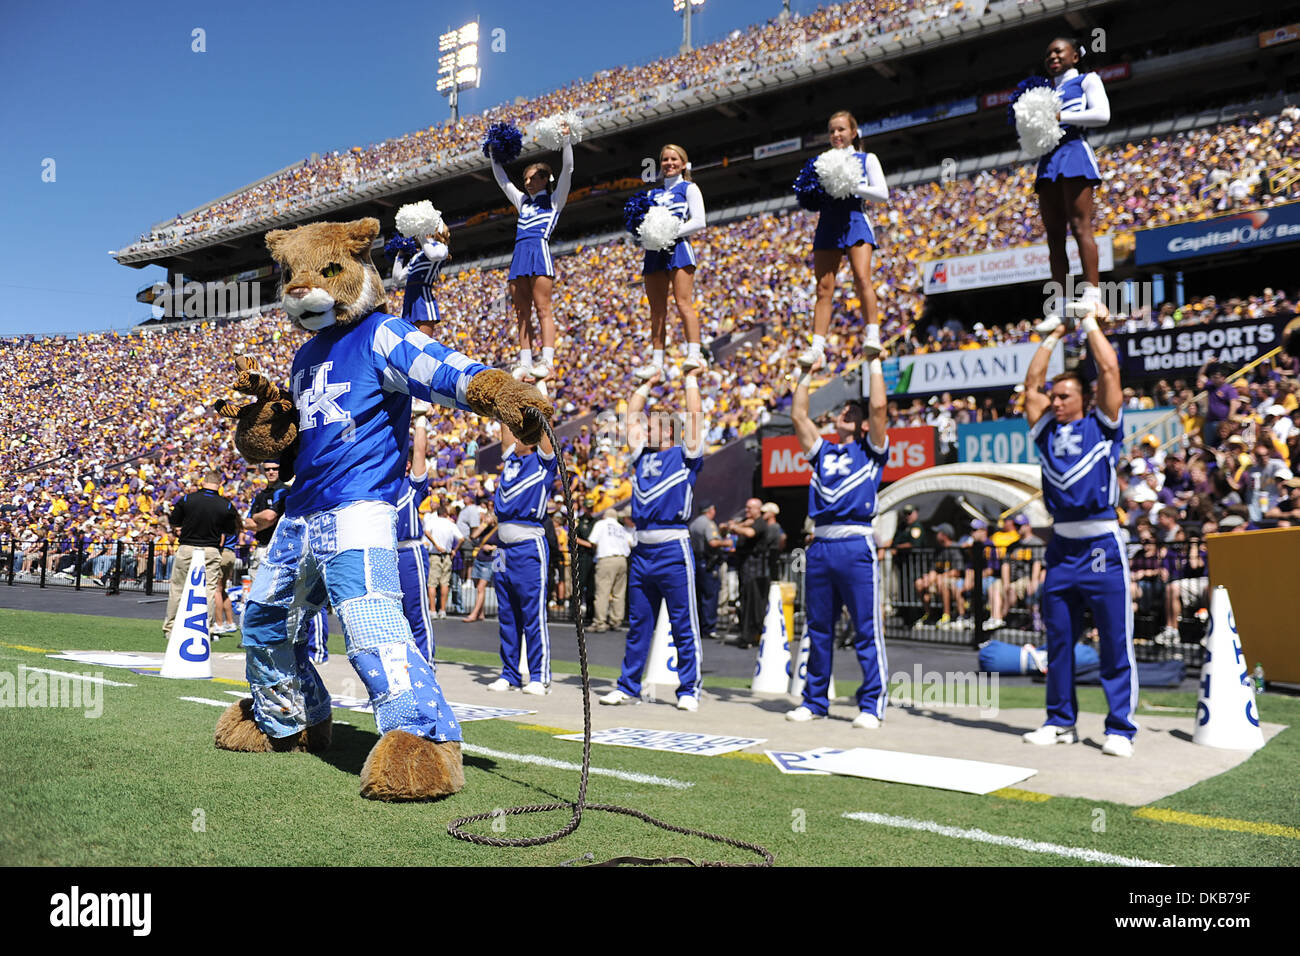 kentucky wildcats mascot and cheerleaders lead cheers for their